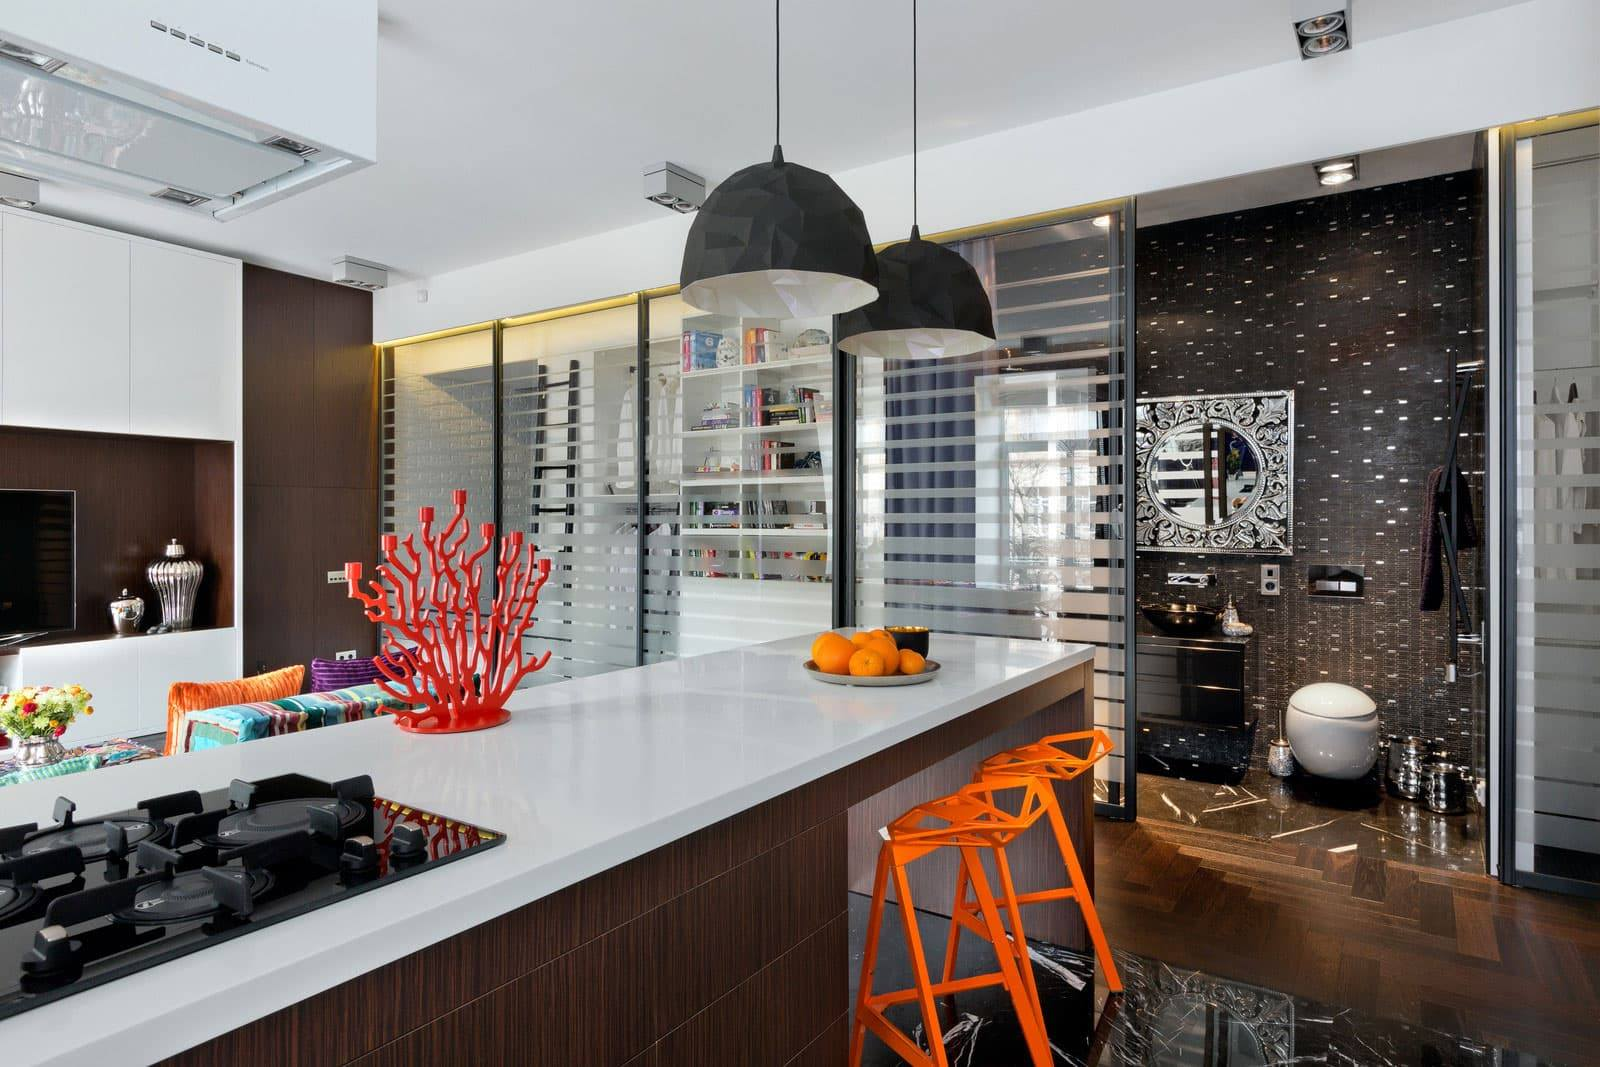 Fusion Style Kitchen Interior Design: Features and Arrangement Ideas. Unusual clorful plastic decor elements at the modern arranged room